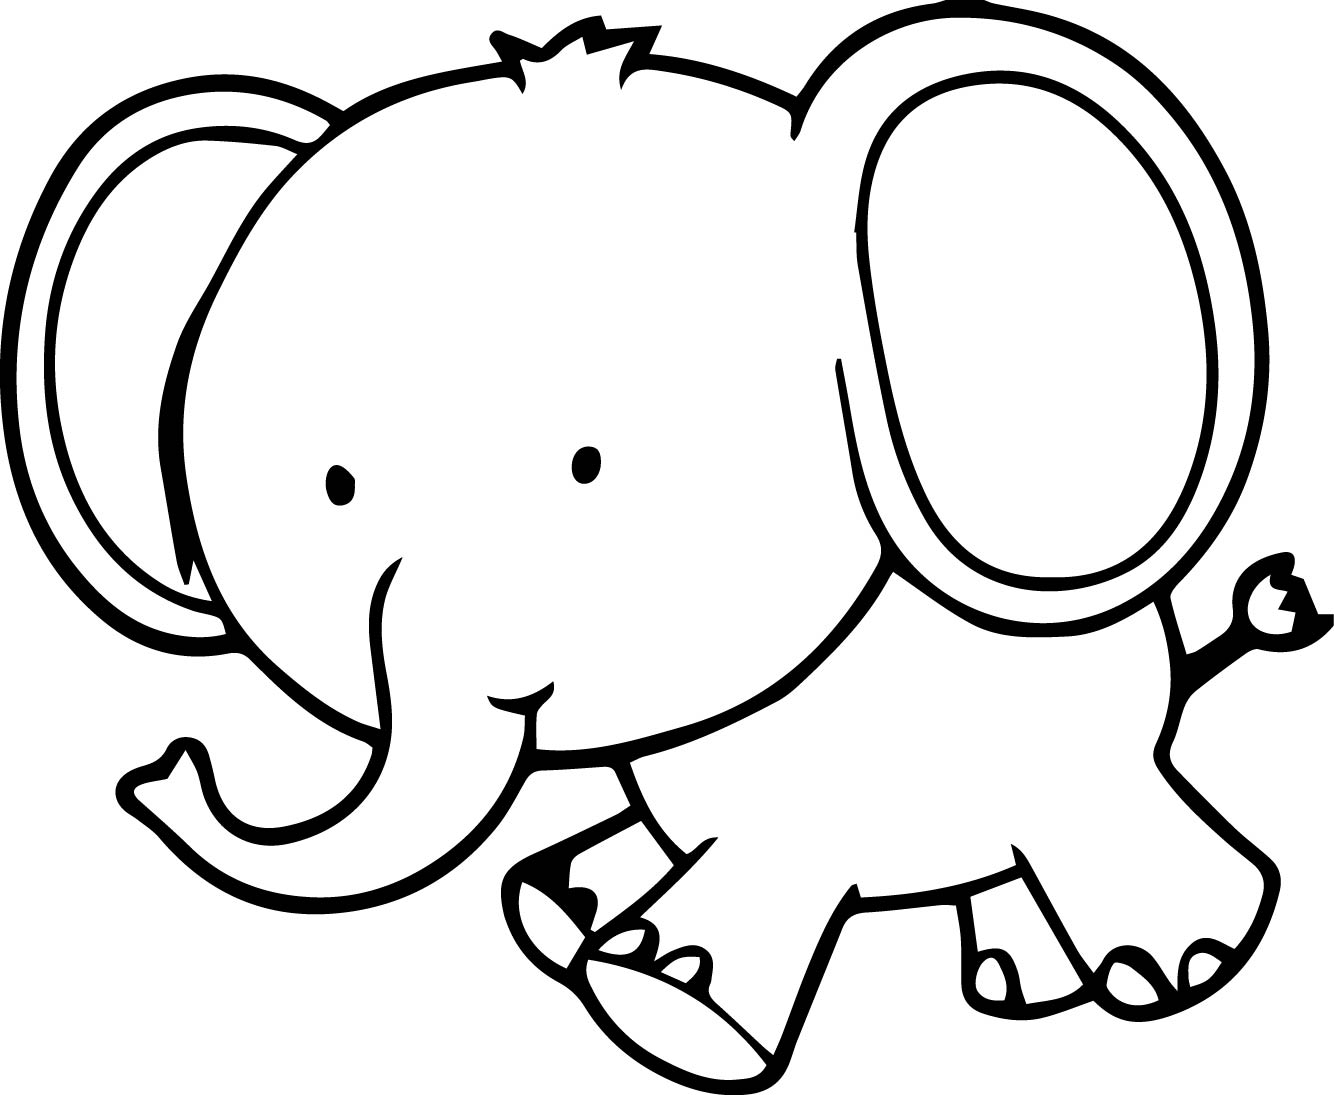 1334x1095 Elephant Coloring Pages Wecoloringpage